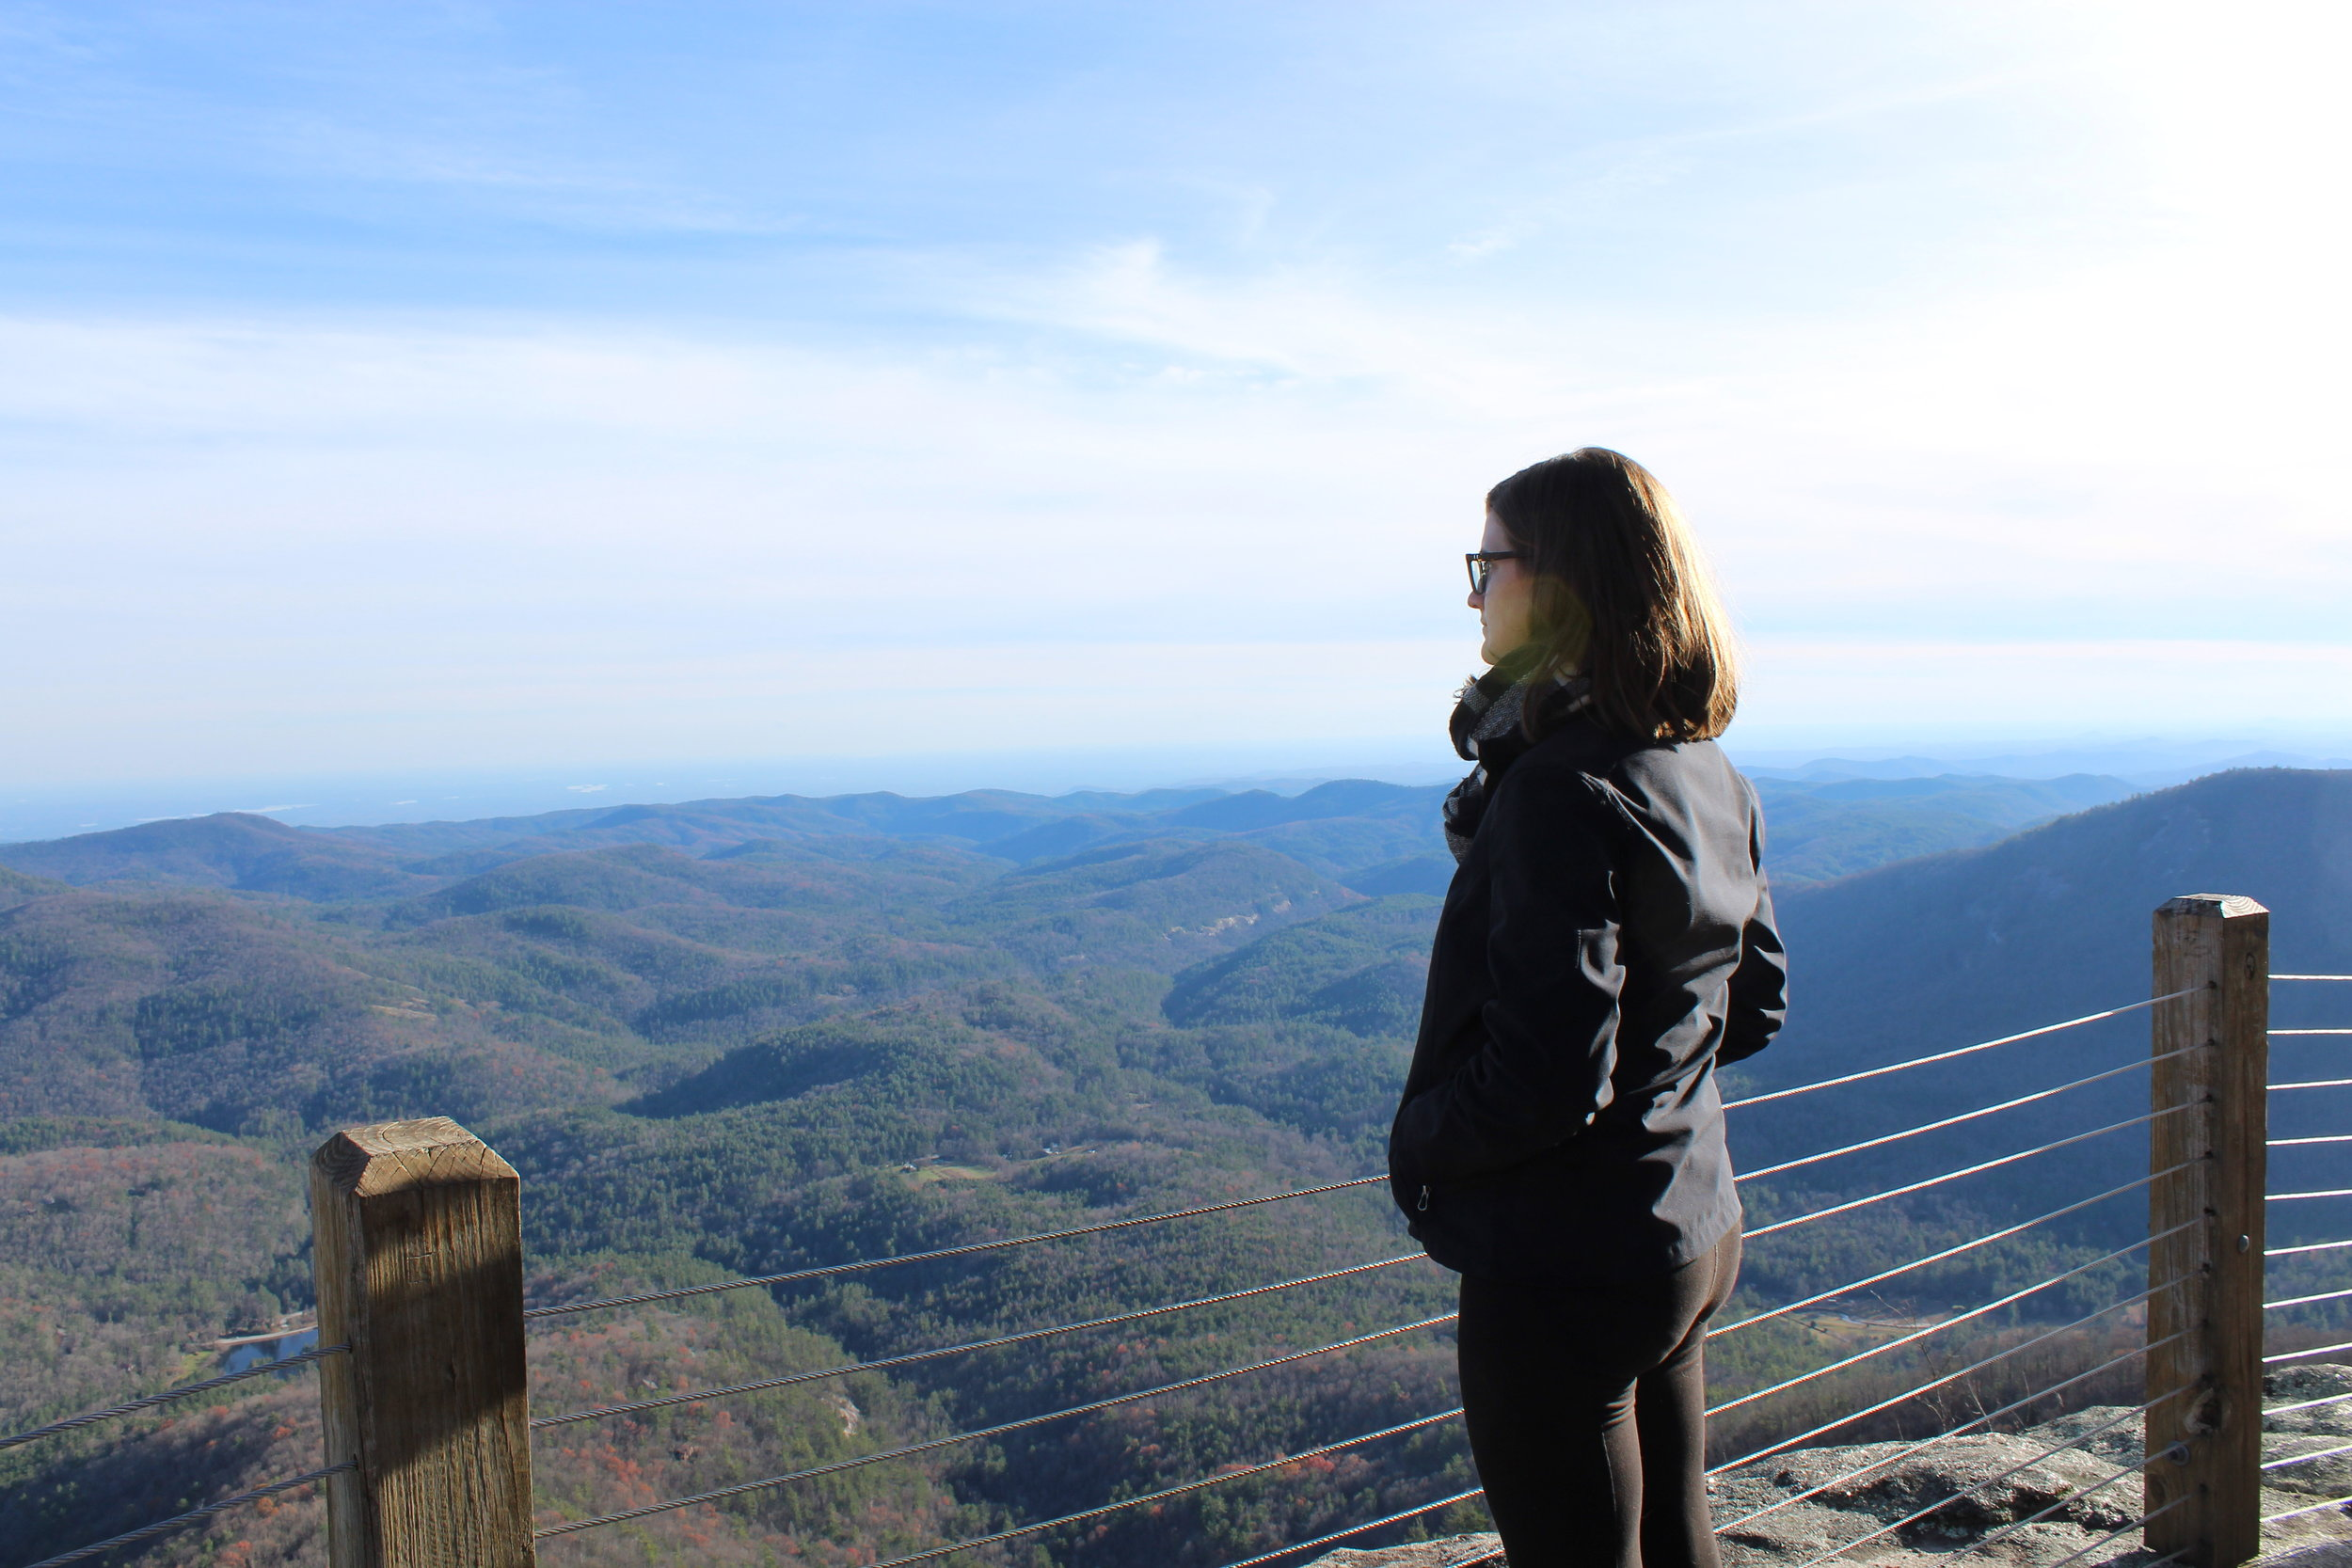 Reflecting at the top of Whiteside Mountain in North Carolina.